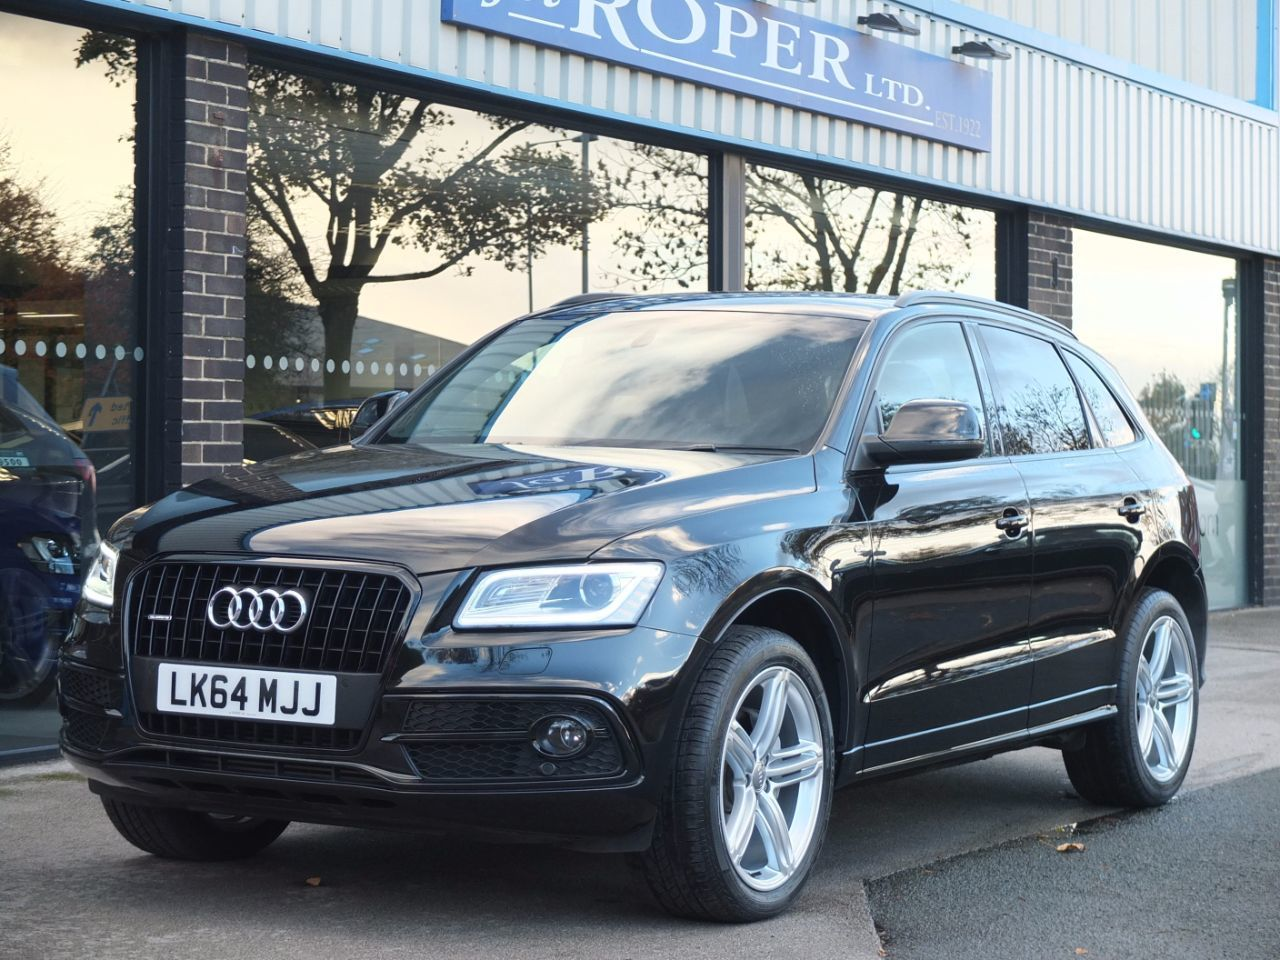 Audi Q5 2.0 TDI quattro S Line Plus 177ps S tronic Estate Diesel Mythos Black MetallicAudi Q5 2.0 TDI quattro S Line Plus 177ps S tronic Estate Diesel Mythos Black Metallic at fa Roper Ltd Bradford